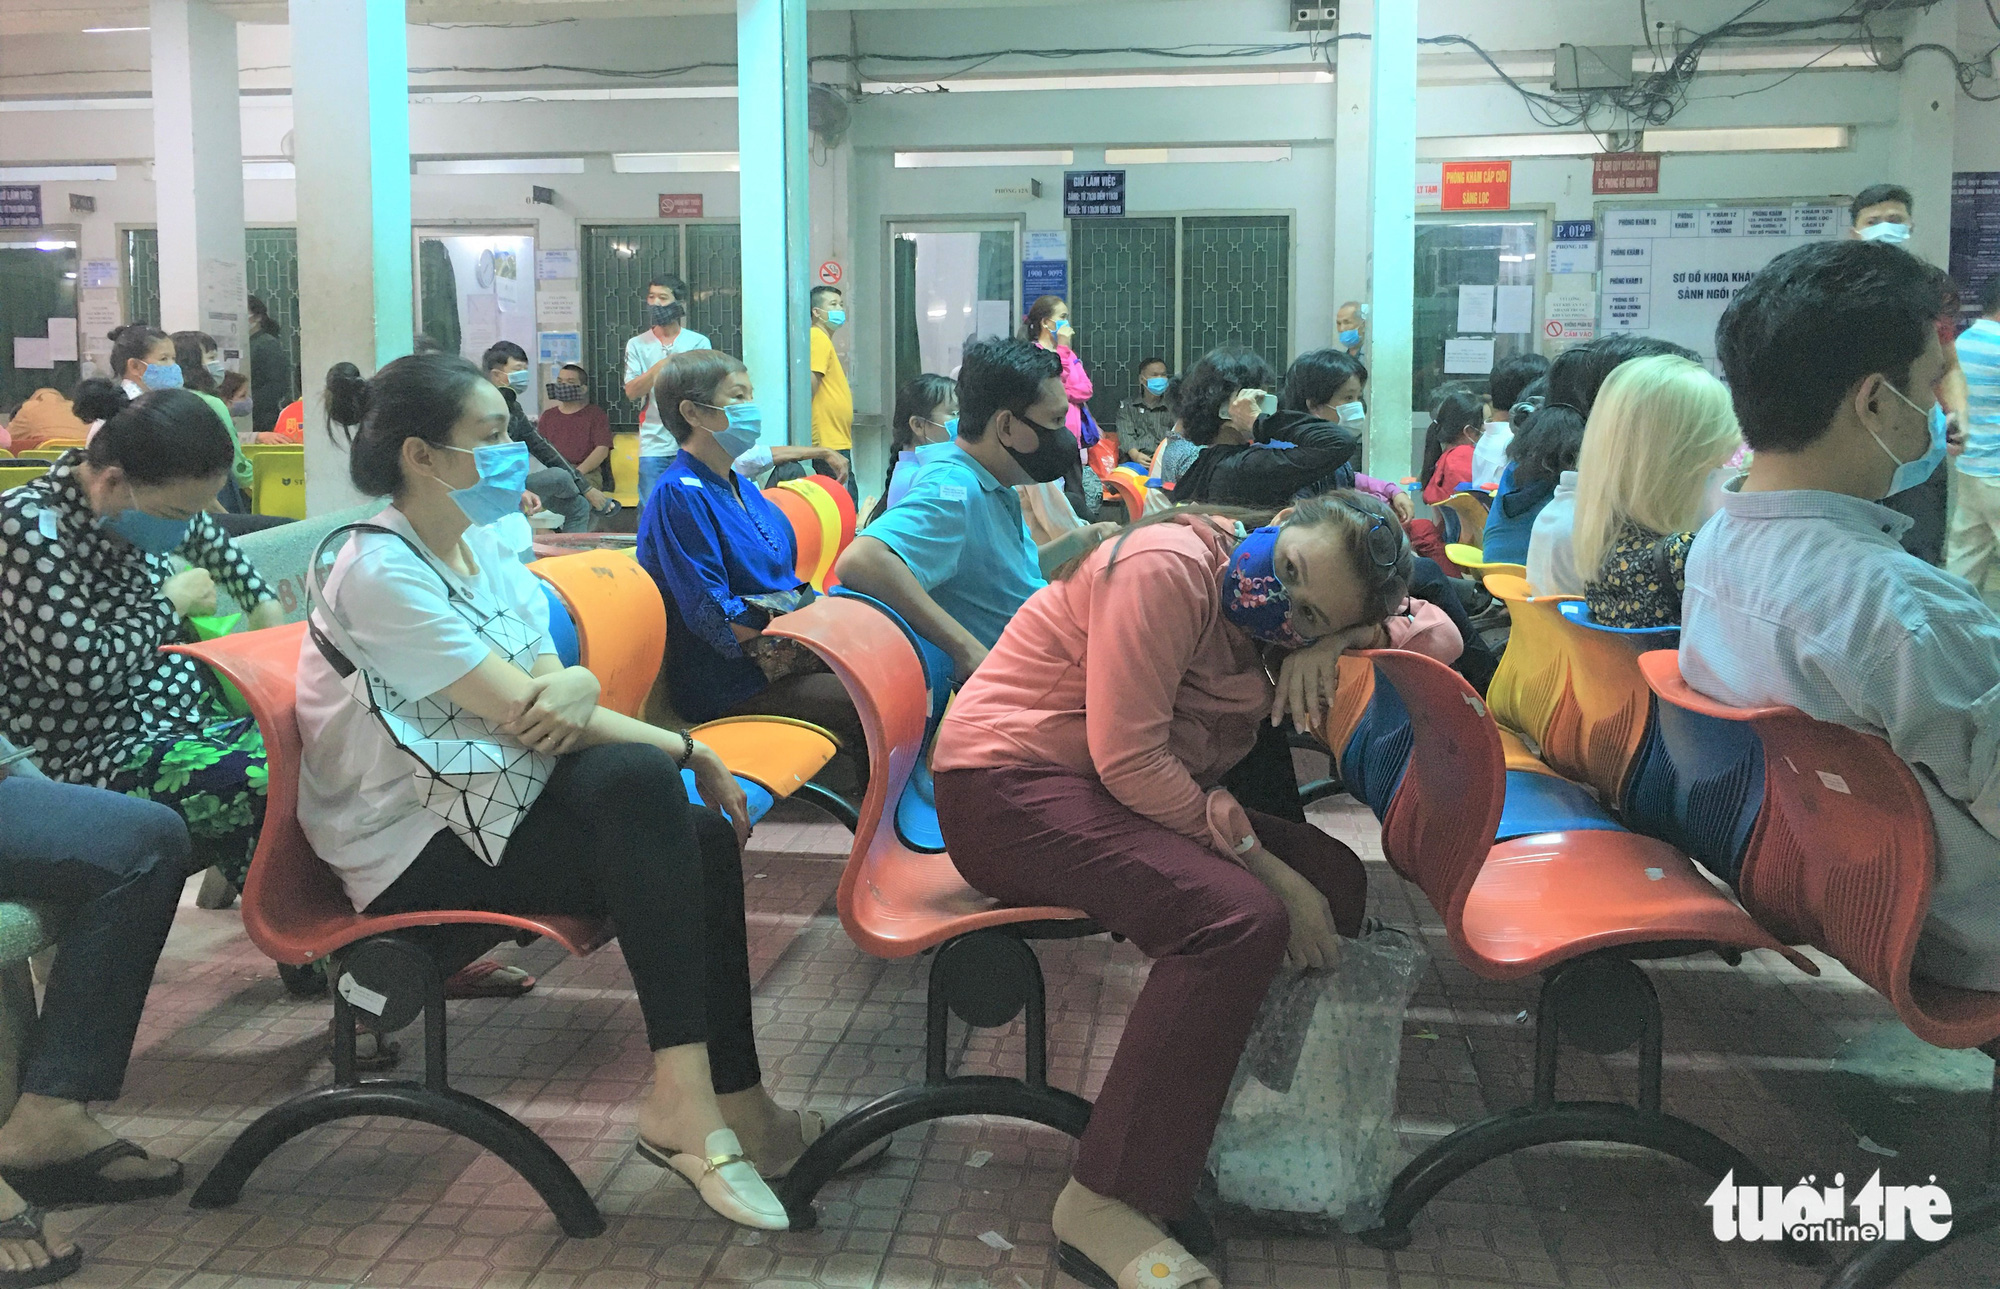 COVID-19 pandemic, hot weather trigger rise in mental illnesses in Ho Chi Minh City